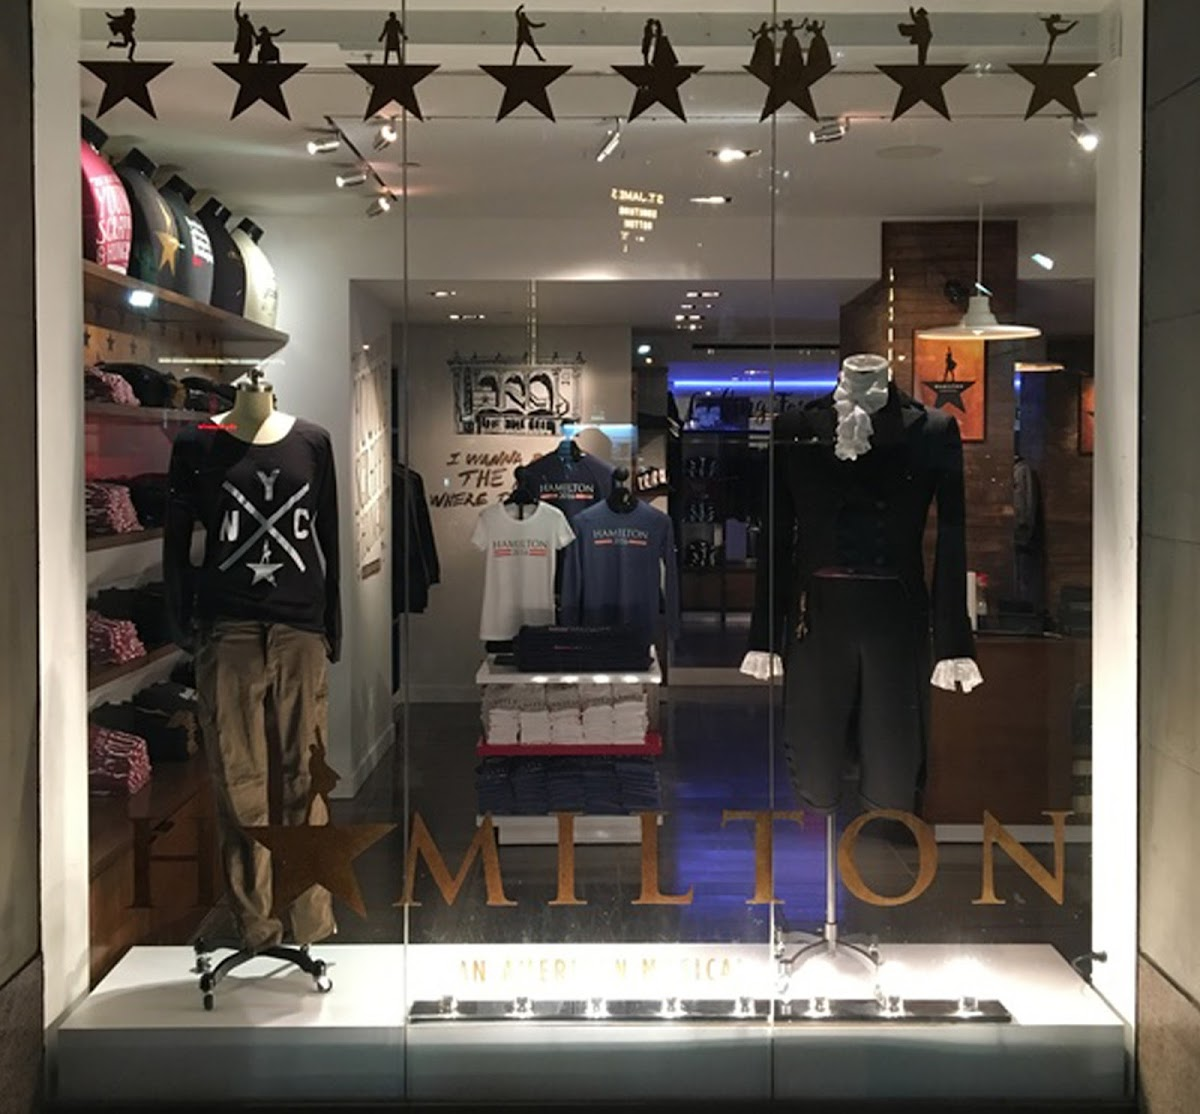 Photo looking into the Hamilton store